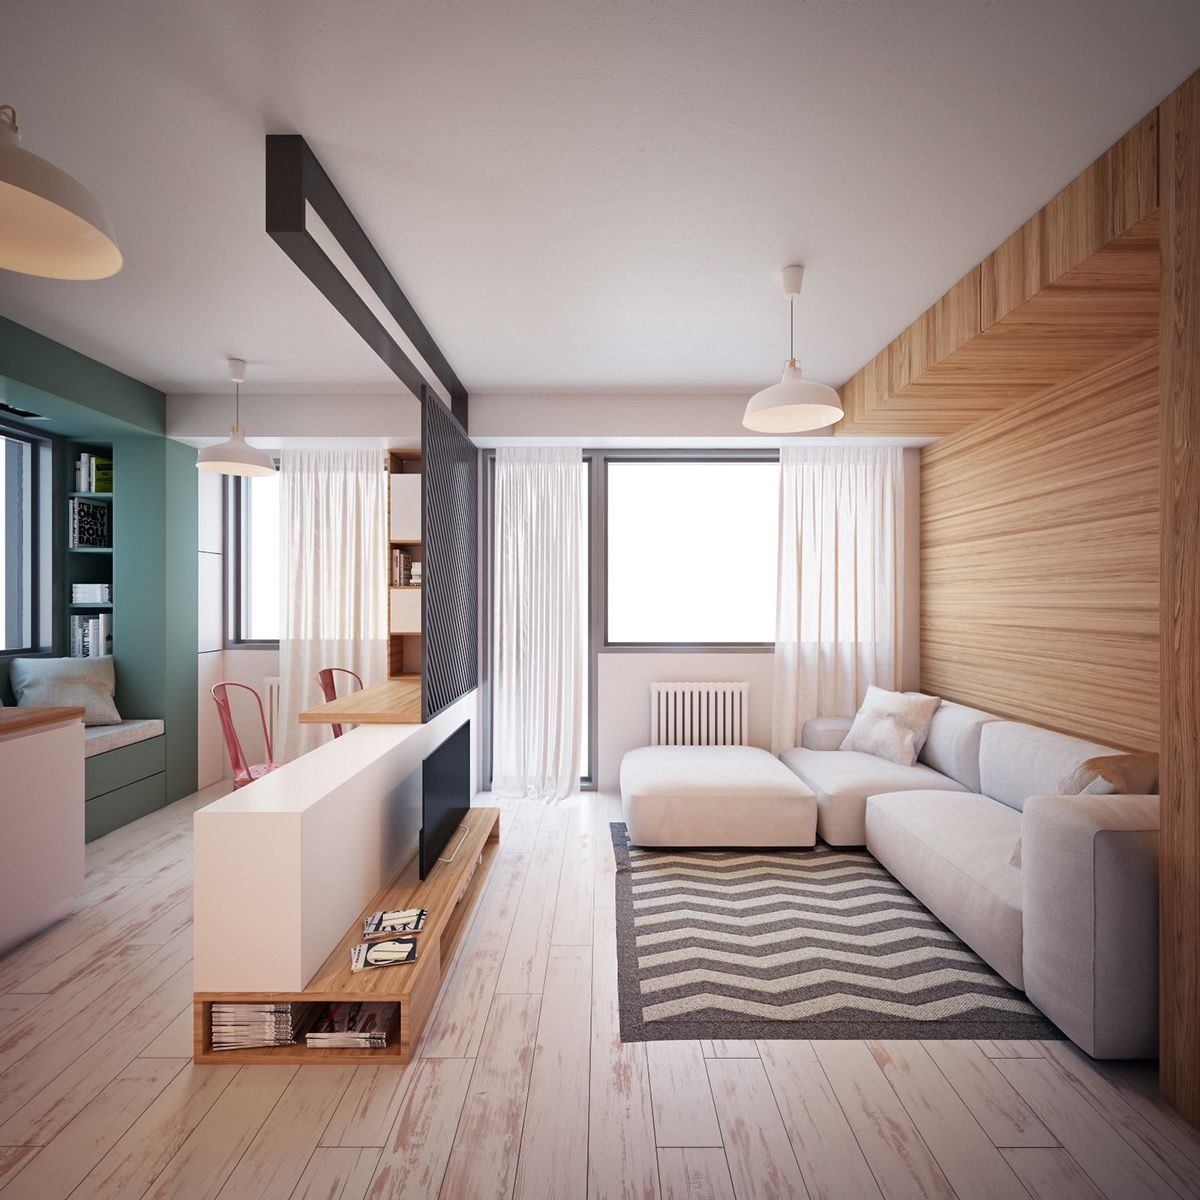 Ultra Tiny Home Design: 4 Interiors Under 40 Square Meters | Tv ...